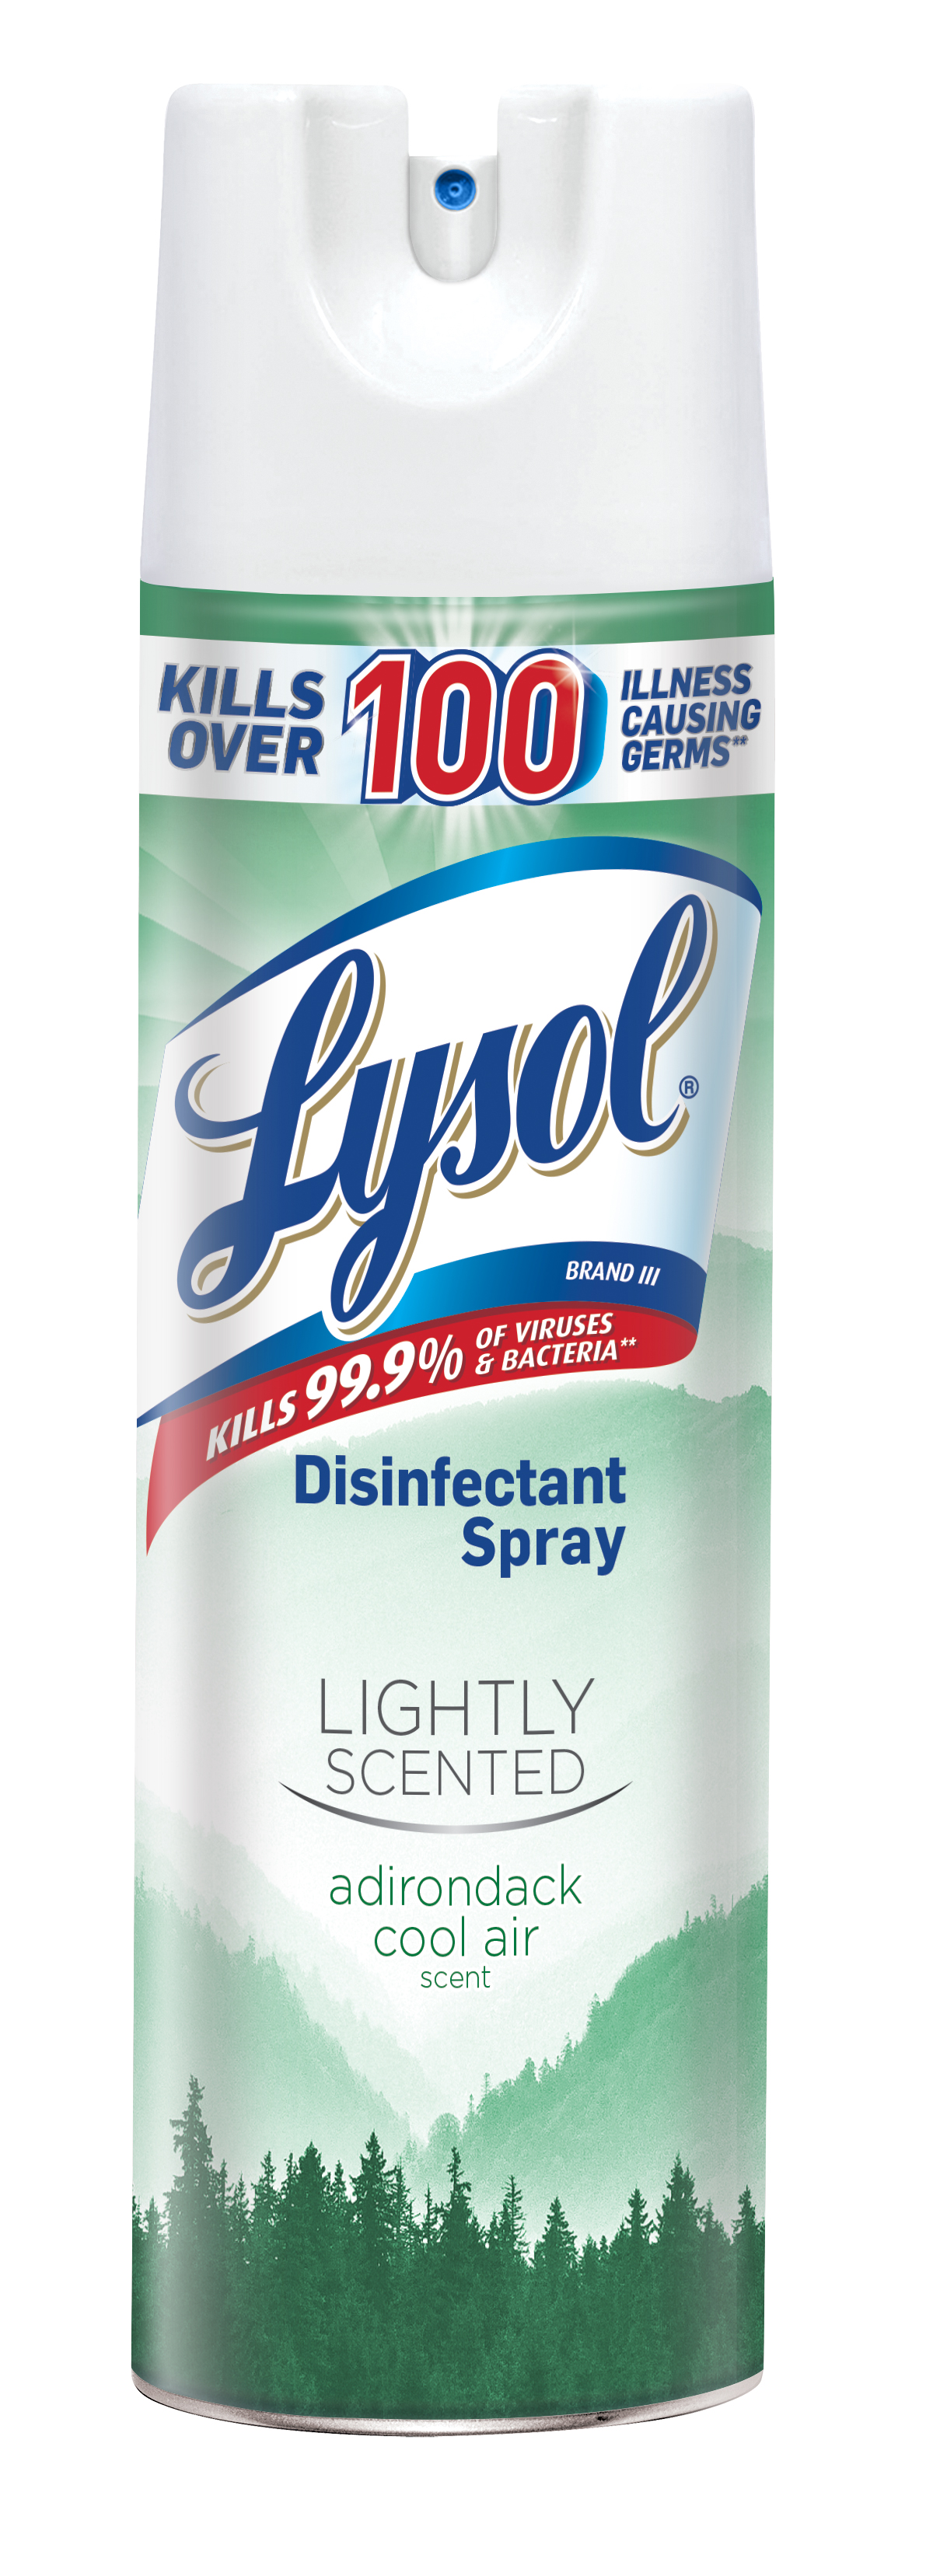 Lysol Disinfectant Spray, Lightly Scented Adirondack Cool Air, 19oz